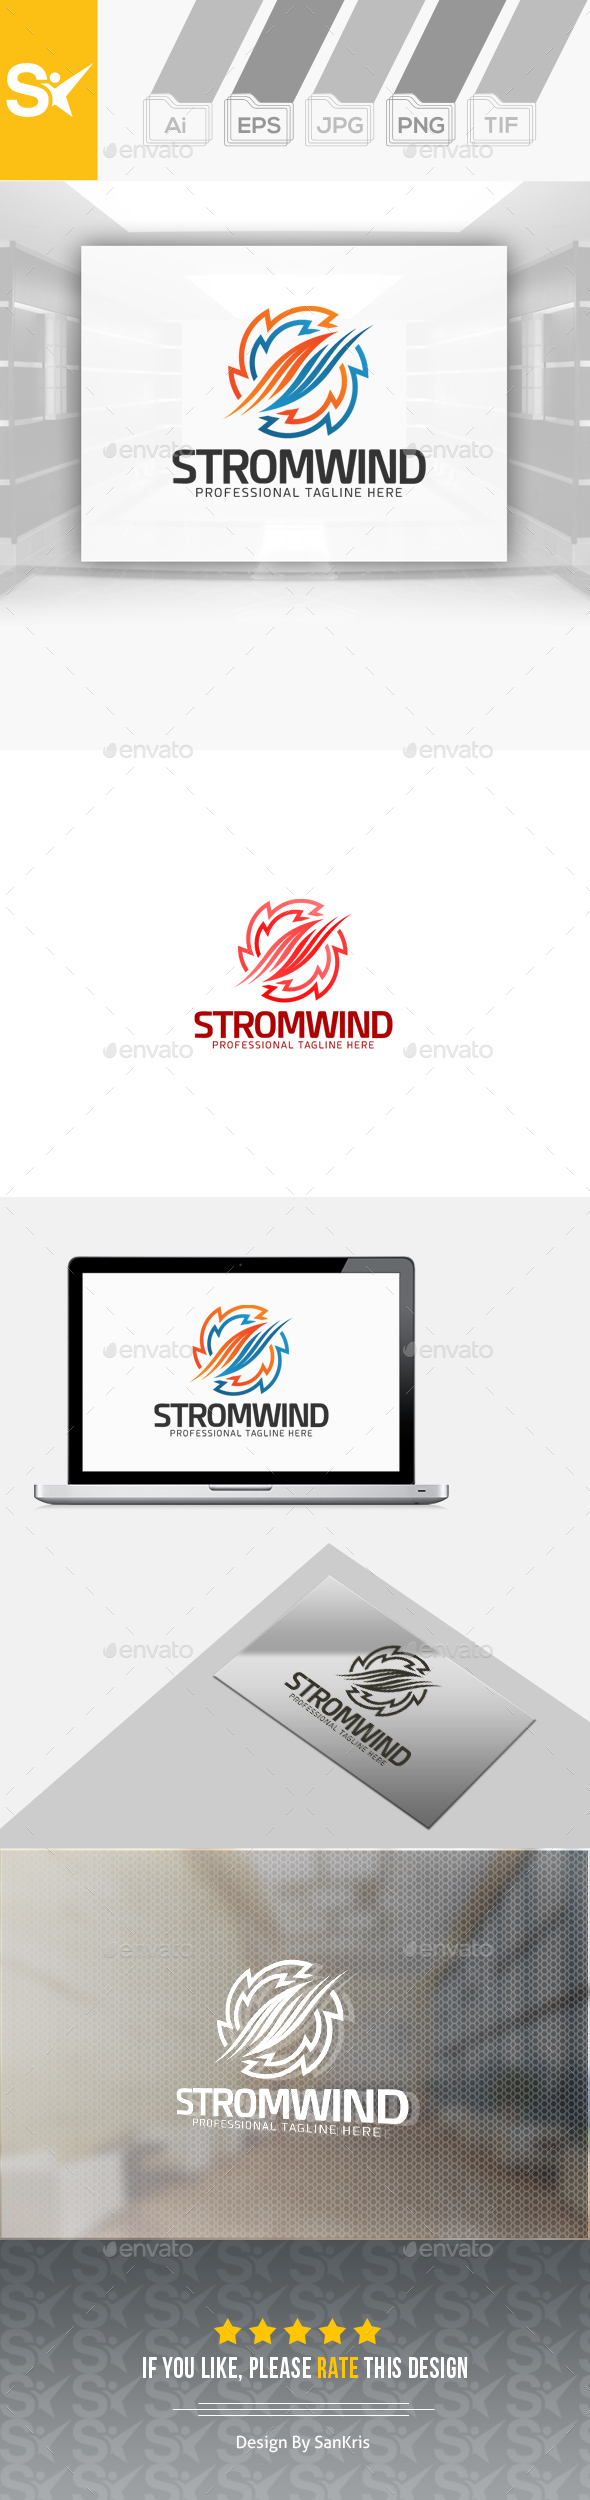 Storm Wind Logo - Abstract Logo Templates